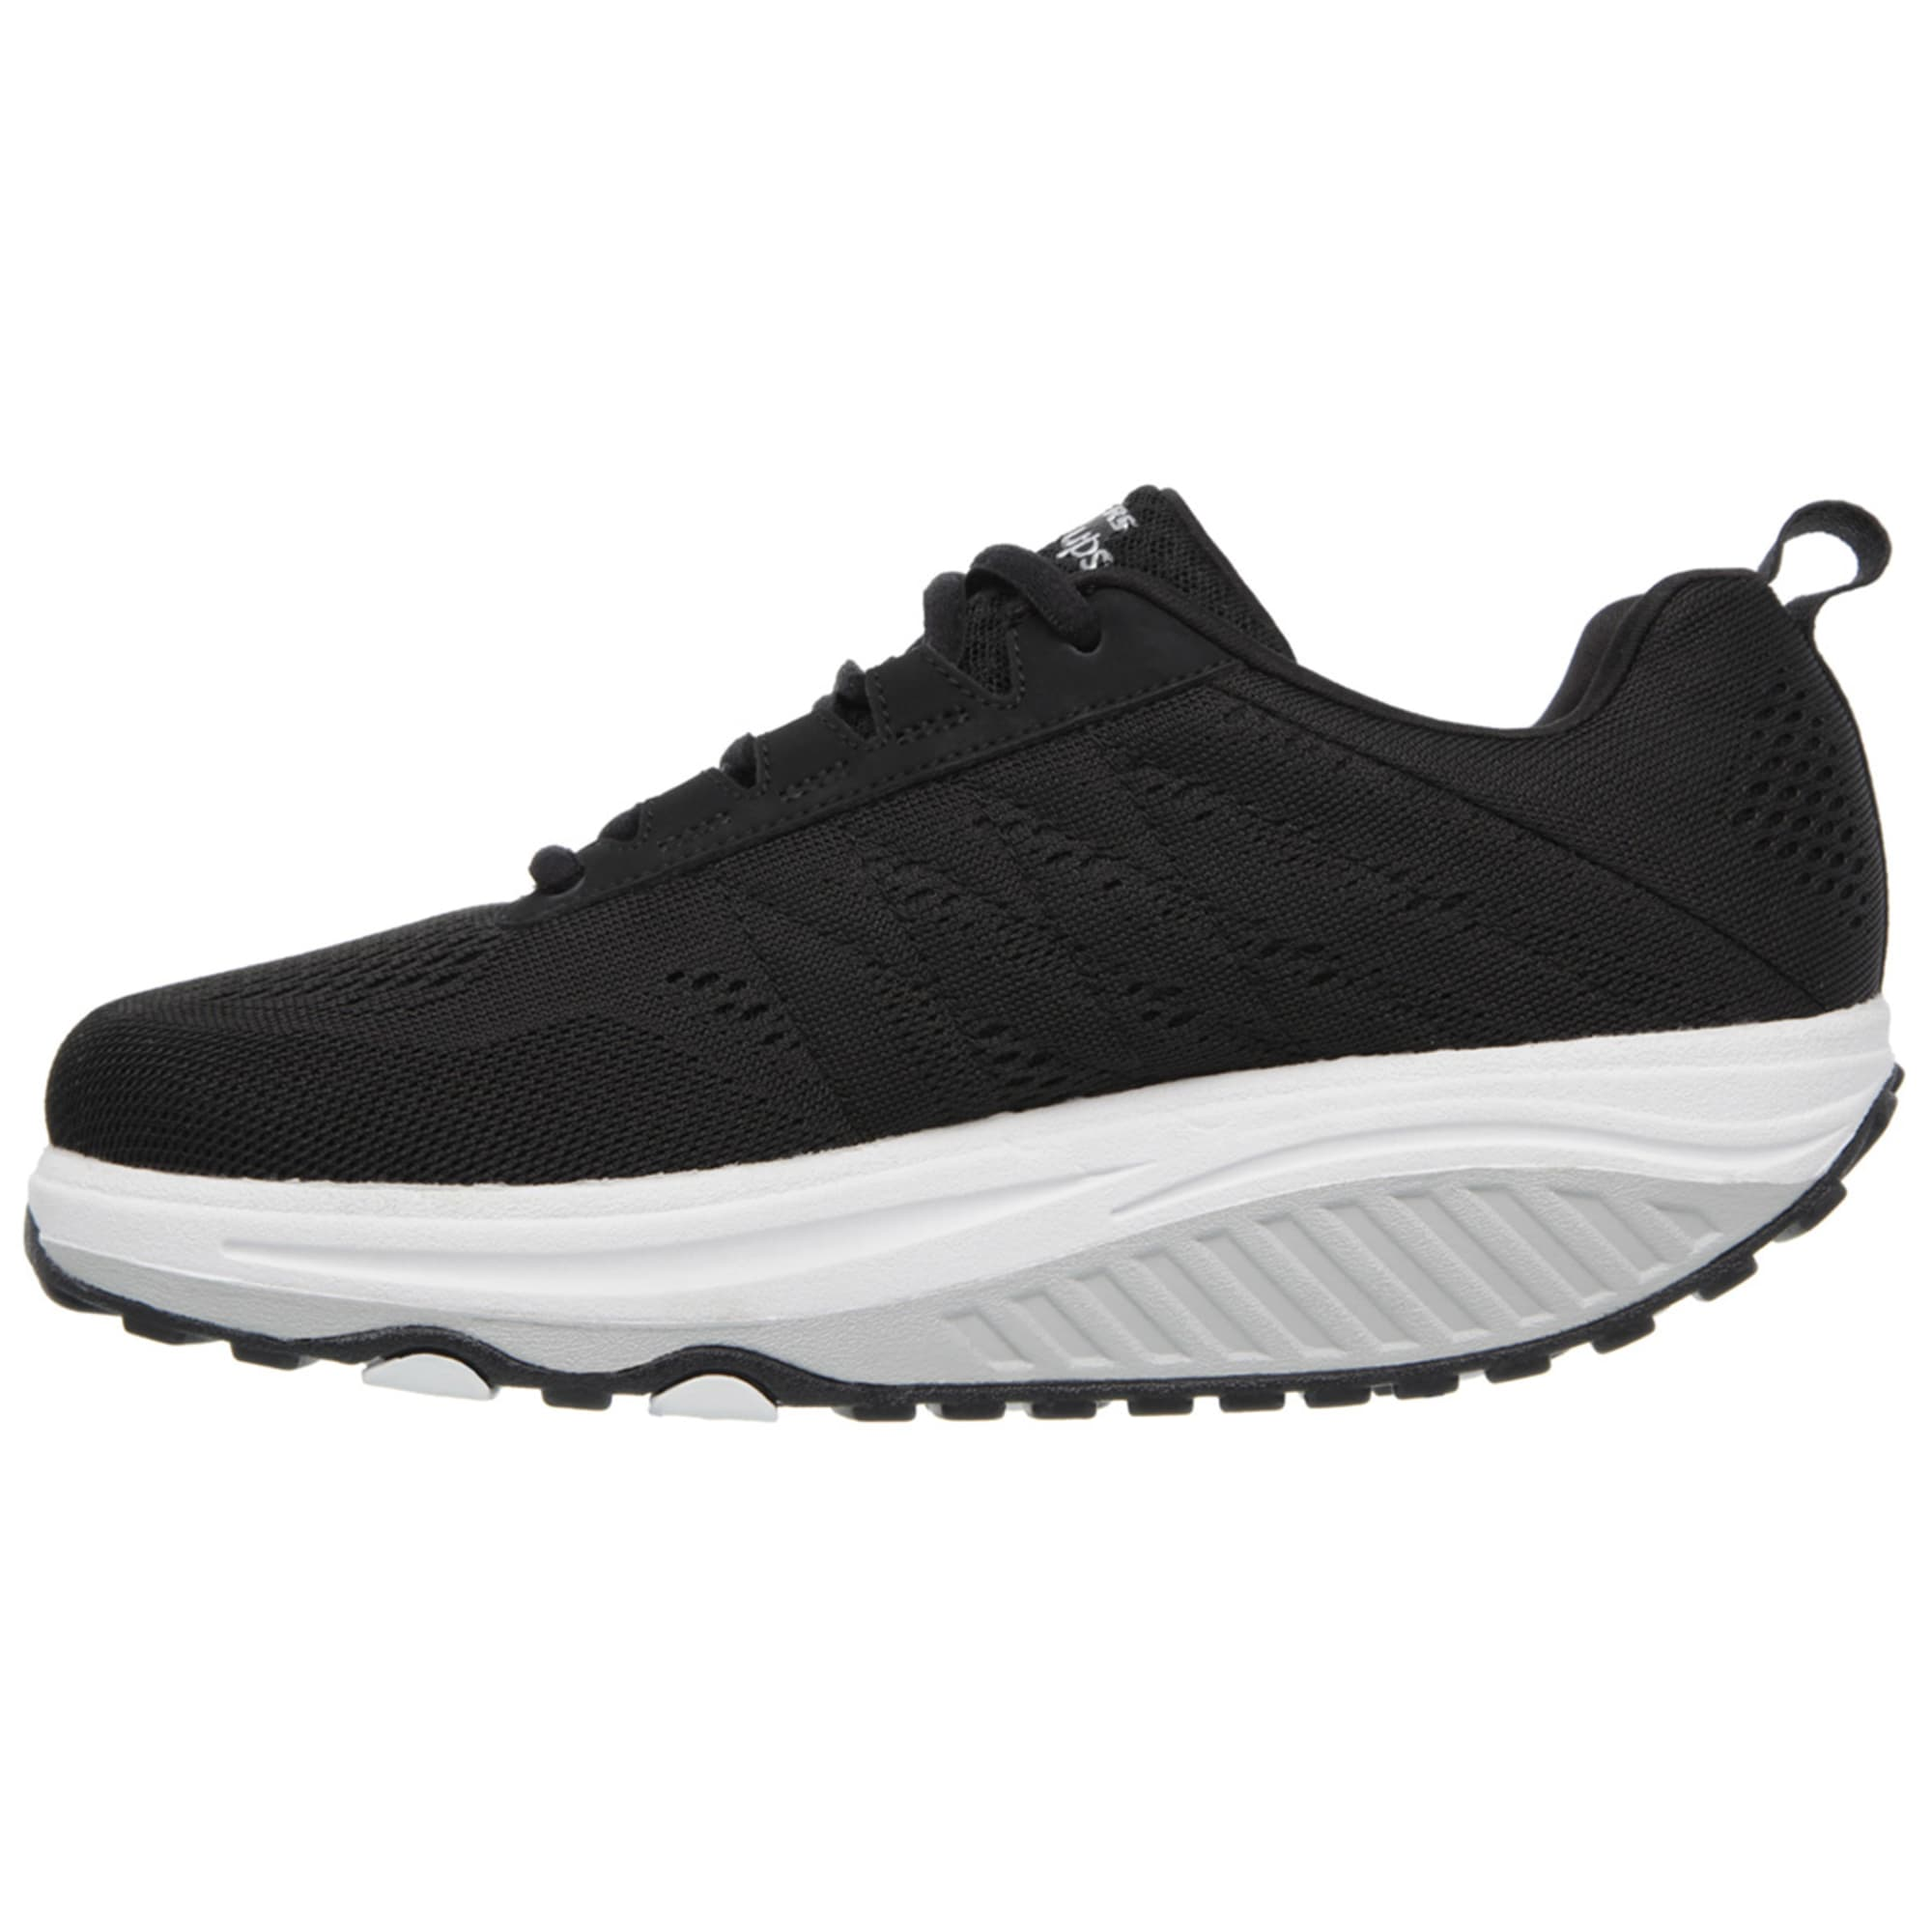 SKECHERS Women's Shape Ups 2.0 Shoes Bob's Stores